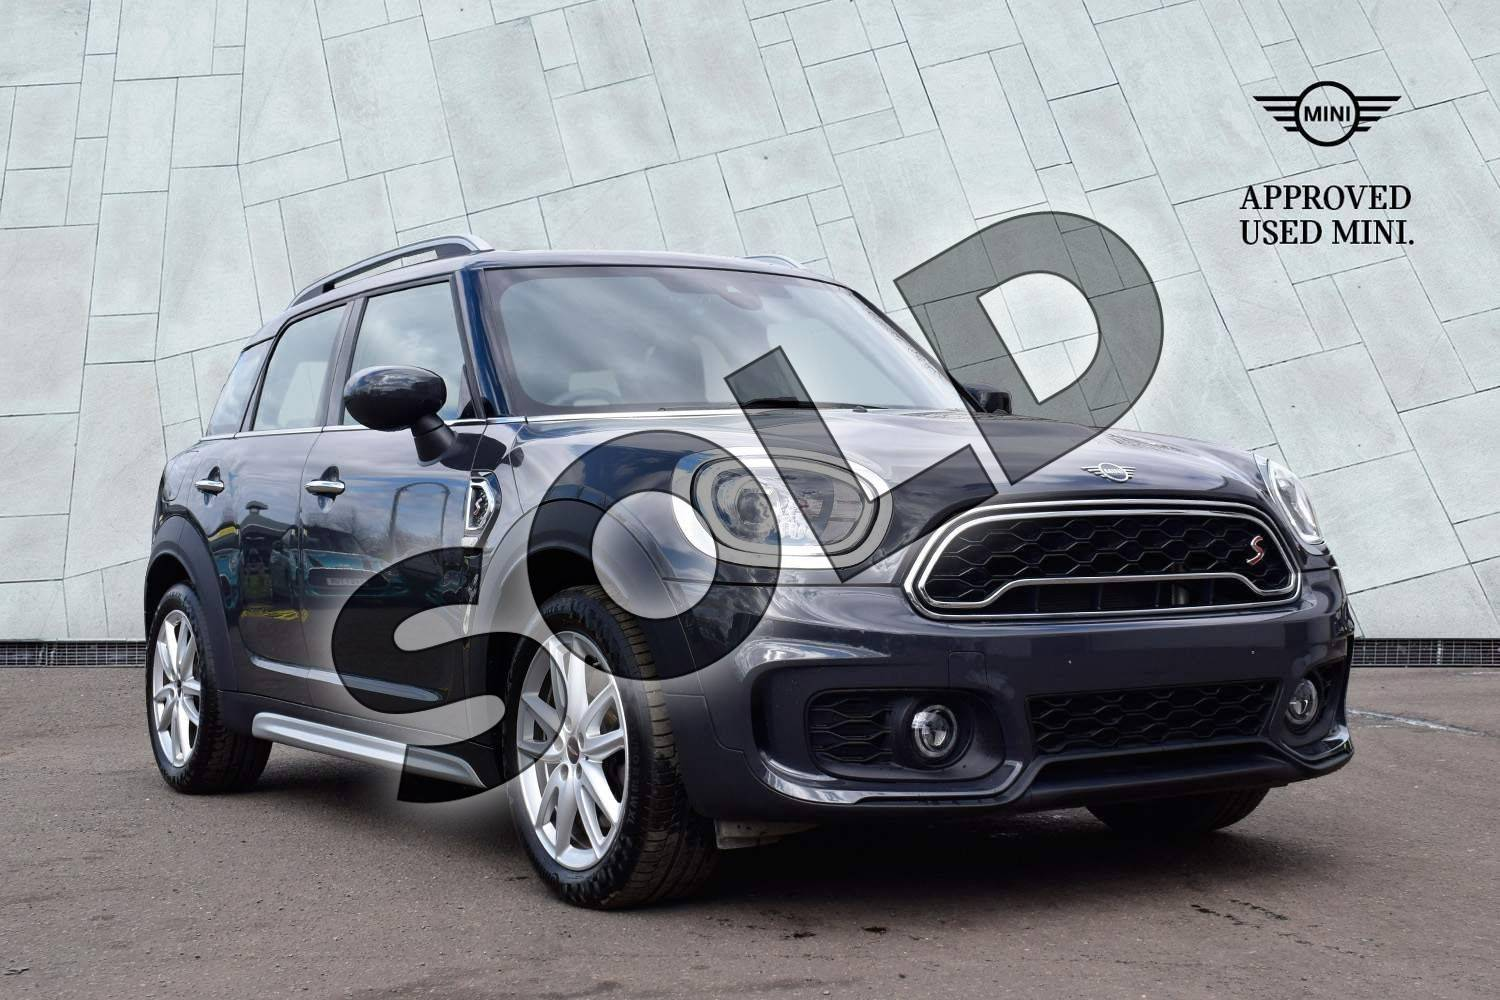 2019 MINI Countryman Hatchback 2.0 Cooper S Sport 5dr Auto in Thunder Grey at Listers Boston (MINI)